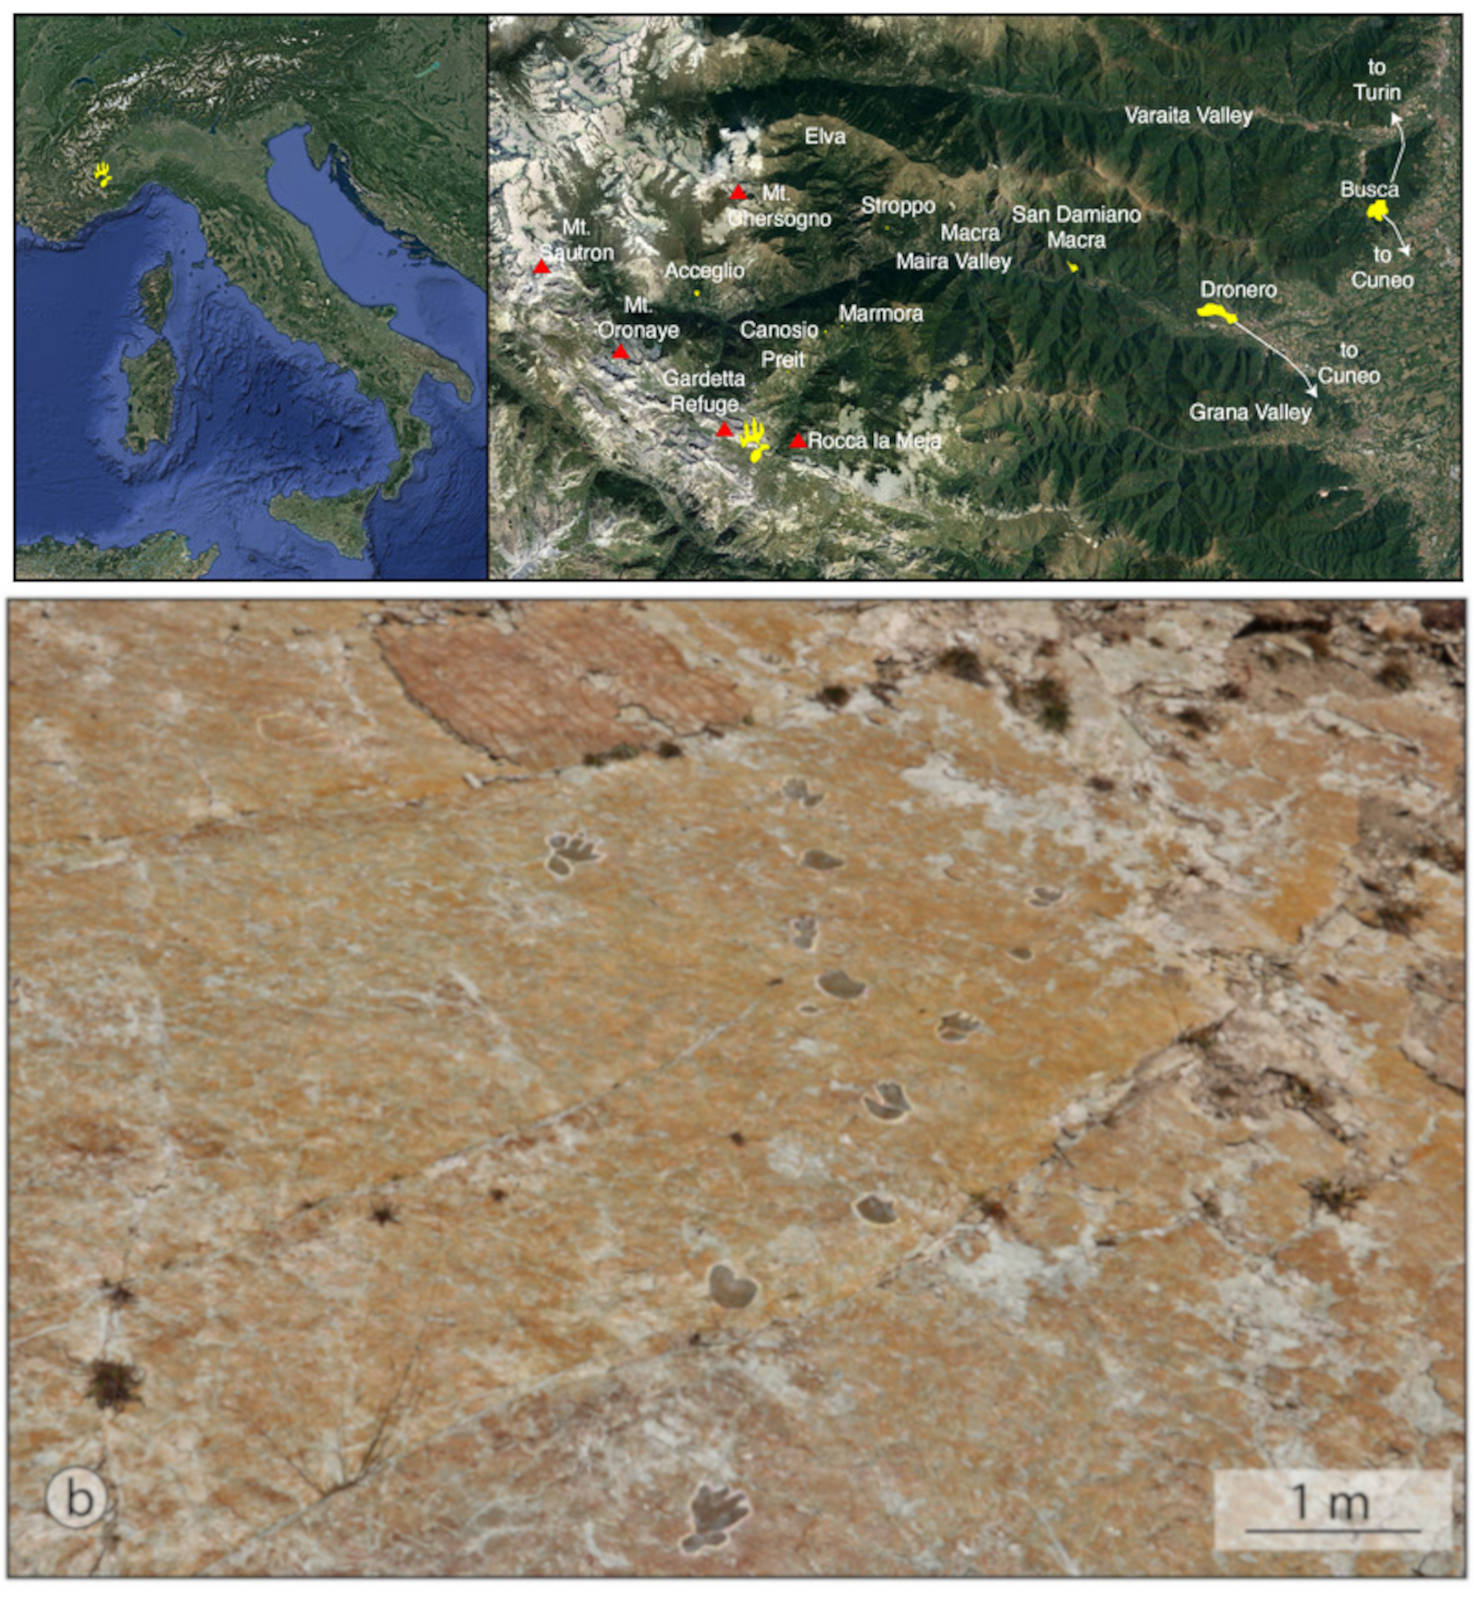 Archosauriform footprints in the Lower Triassic of Western Alps and their role in understanding the effects of the Permian-Triassic hyperthermal